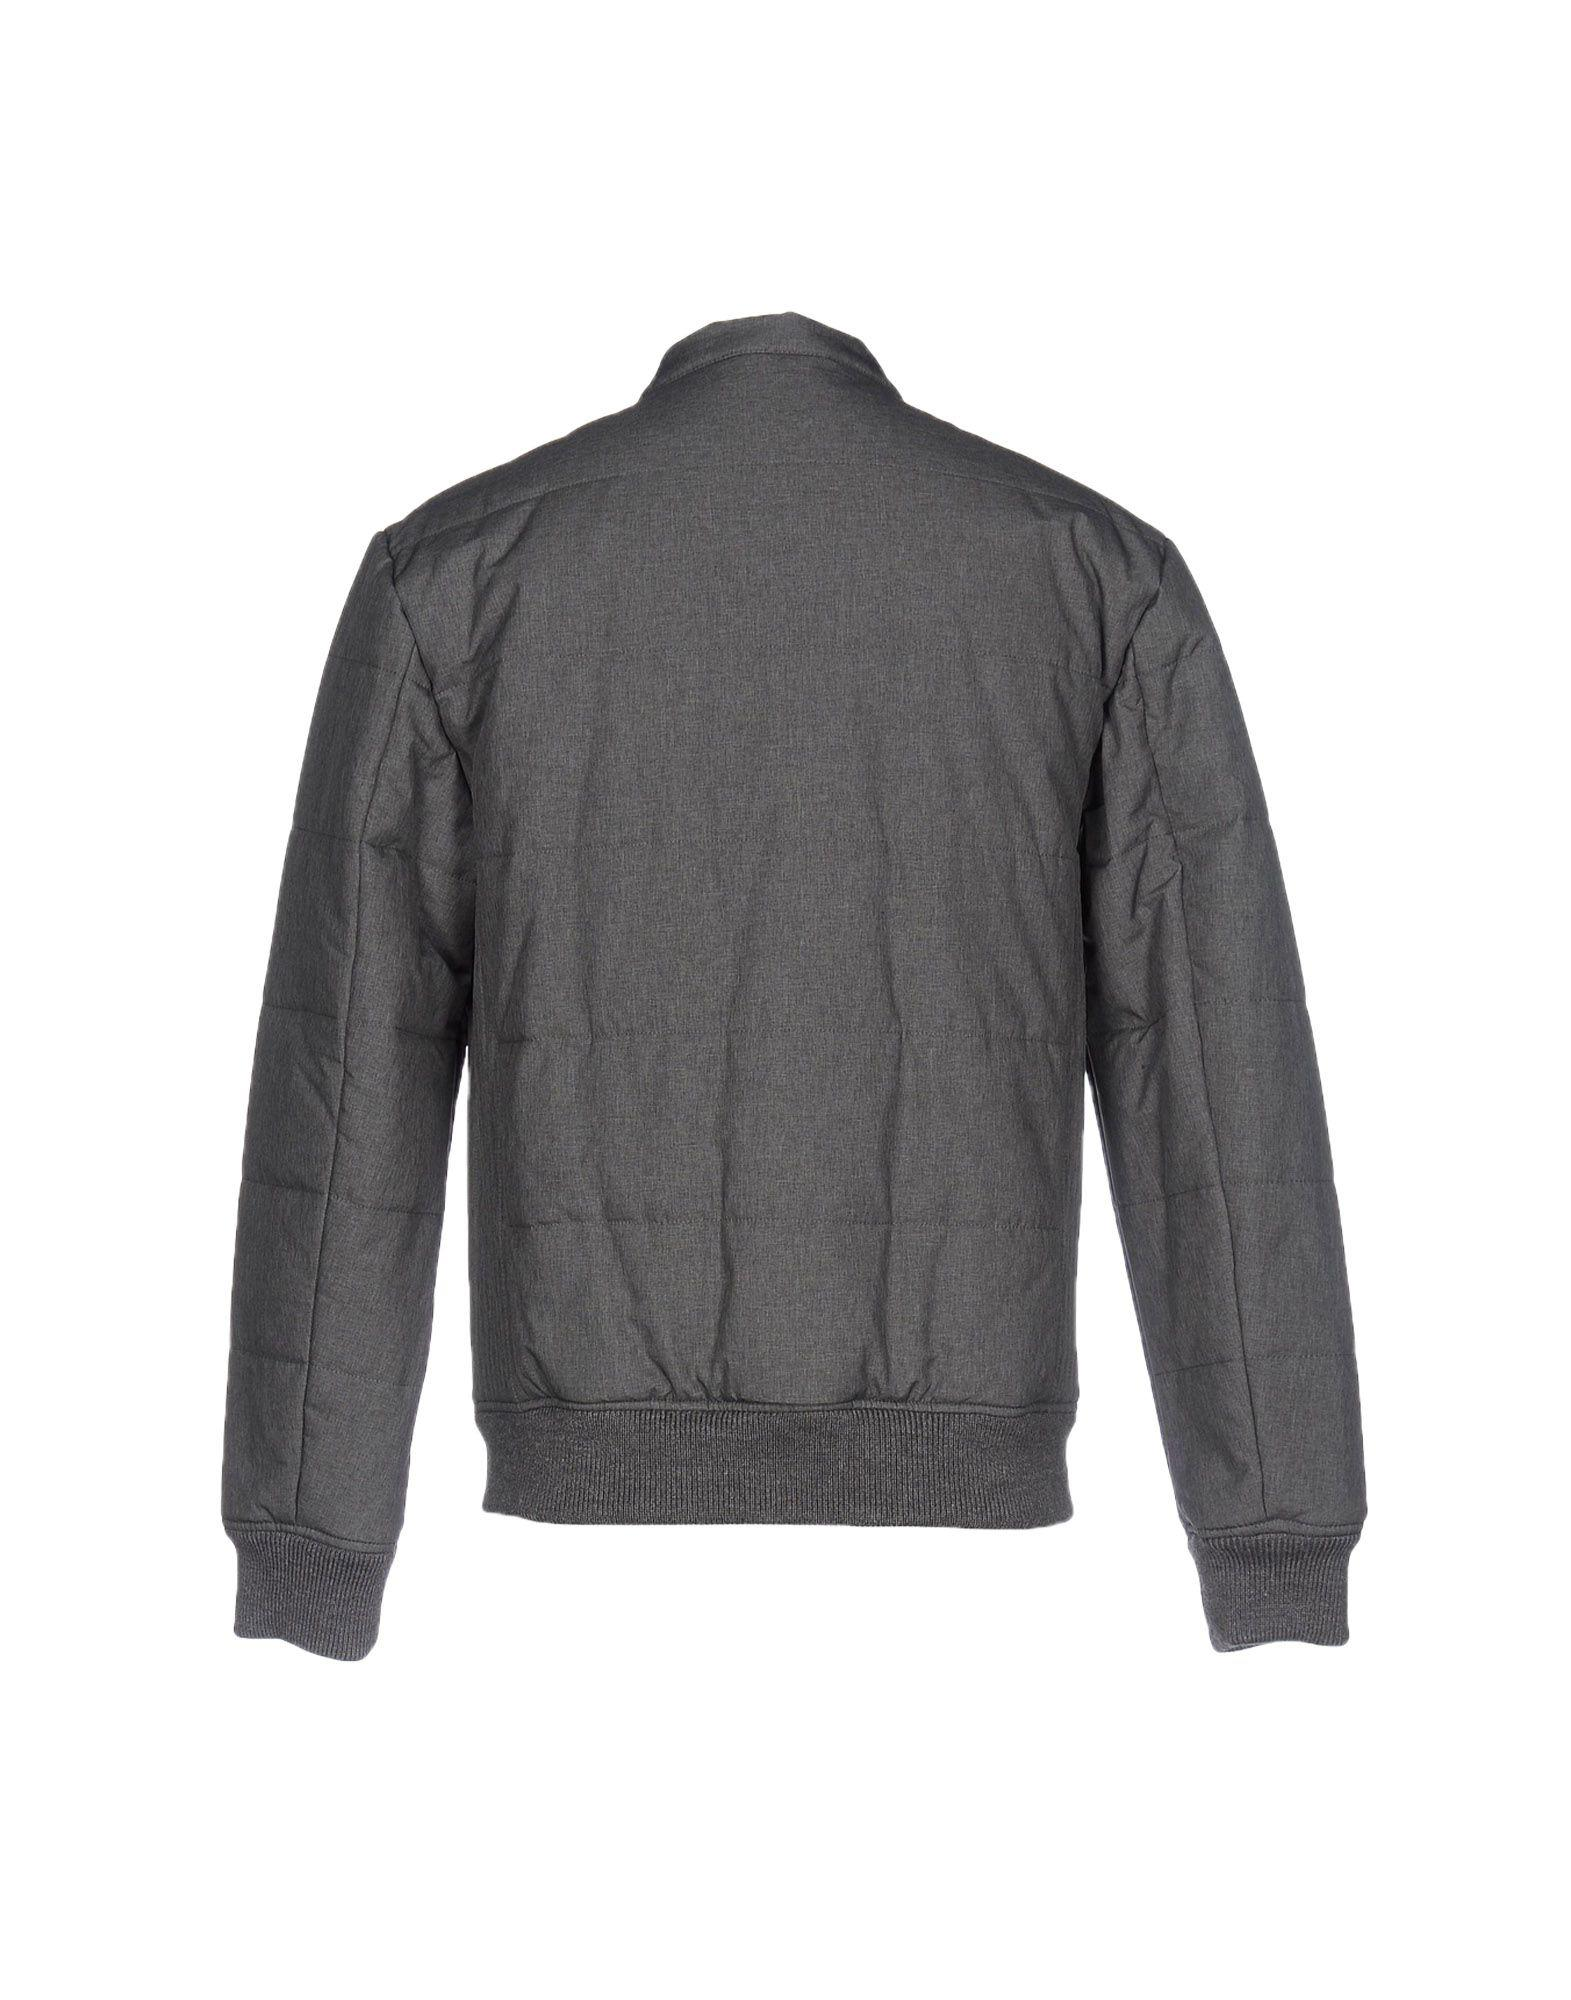 Frankie Morello Synthetic Jackets in Grey (Grey) for Men